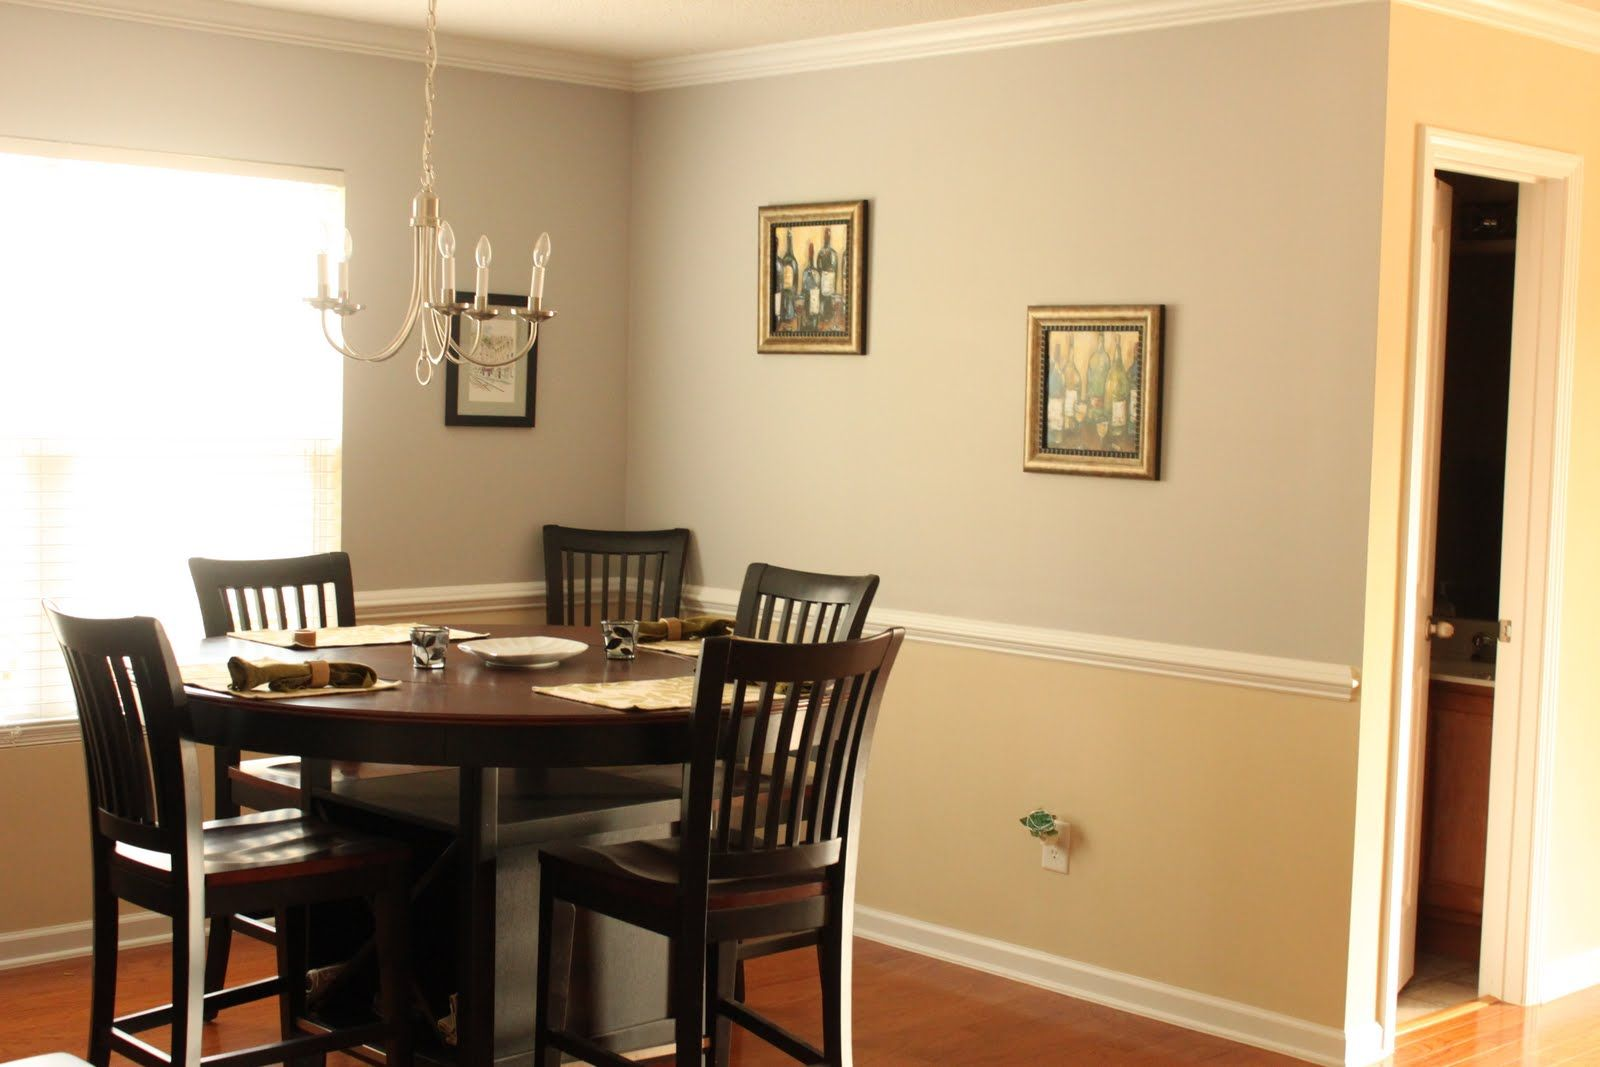 Gray and beige scheme best color to paint a interior room for Beige wall paint colors